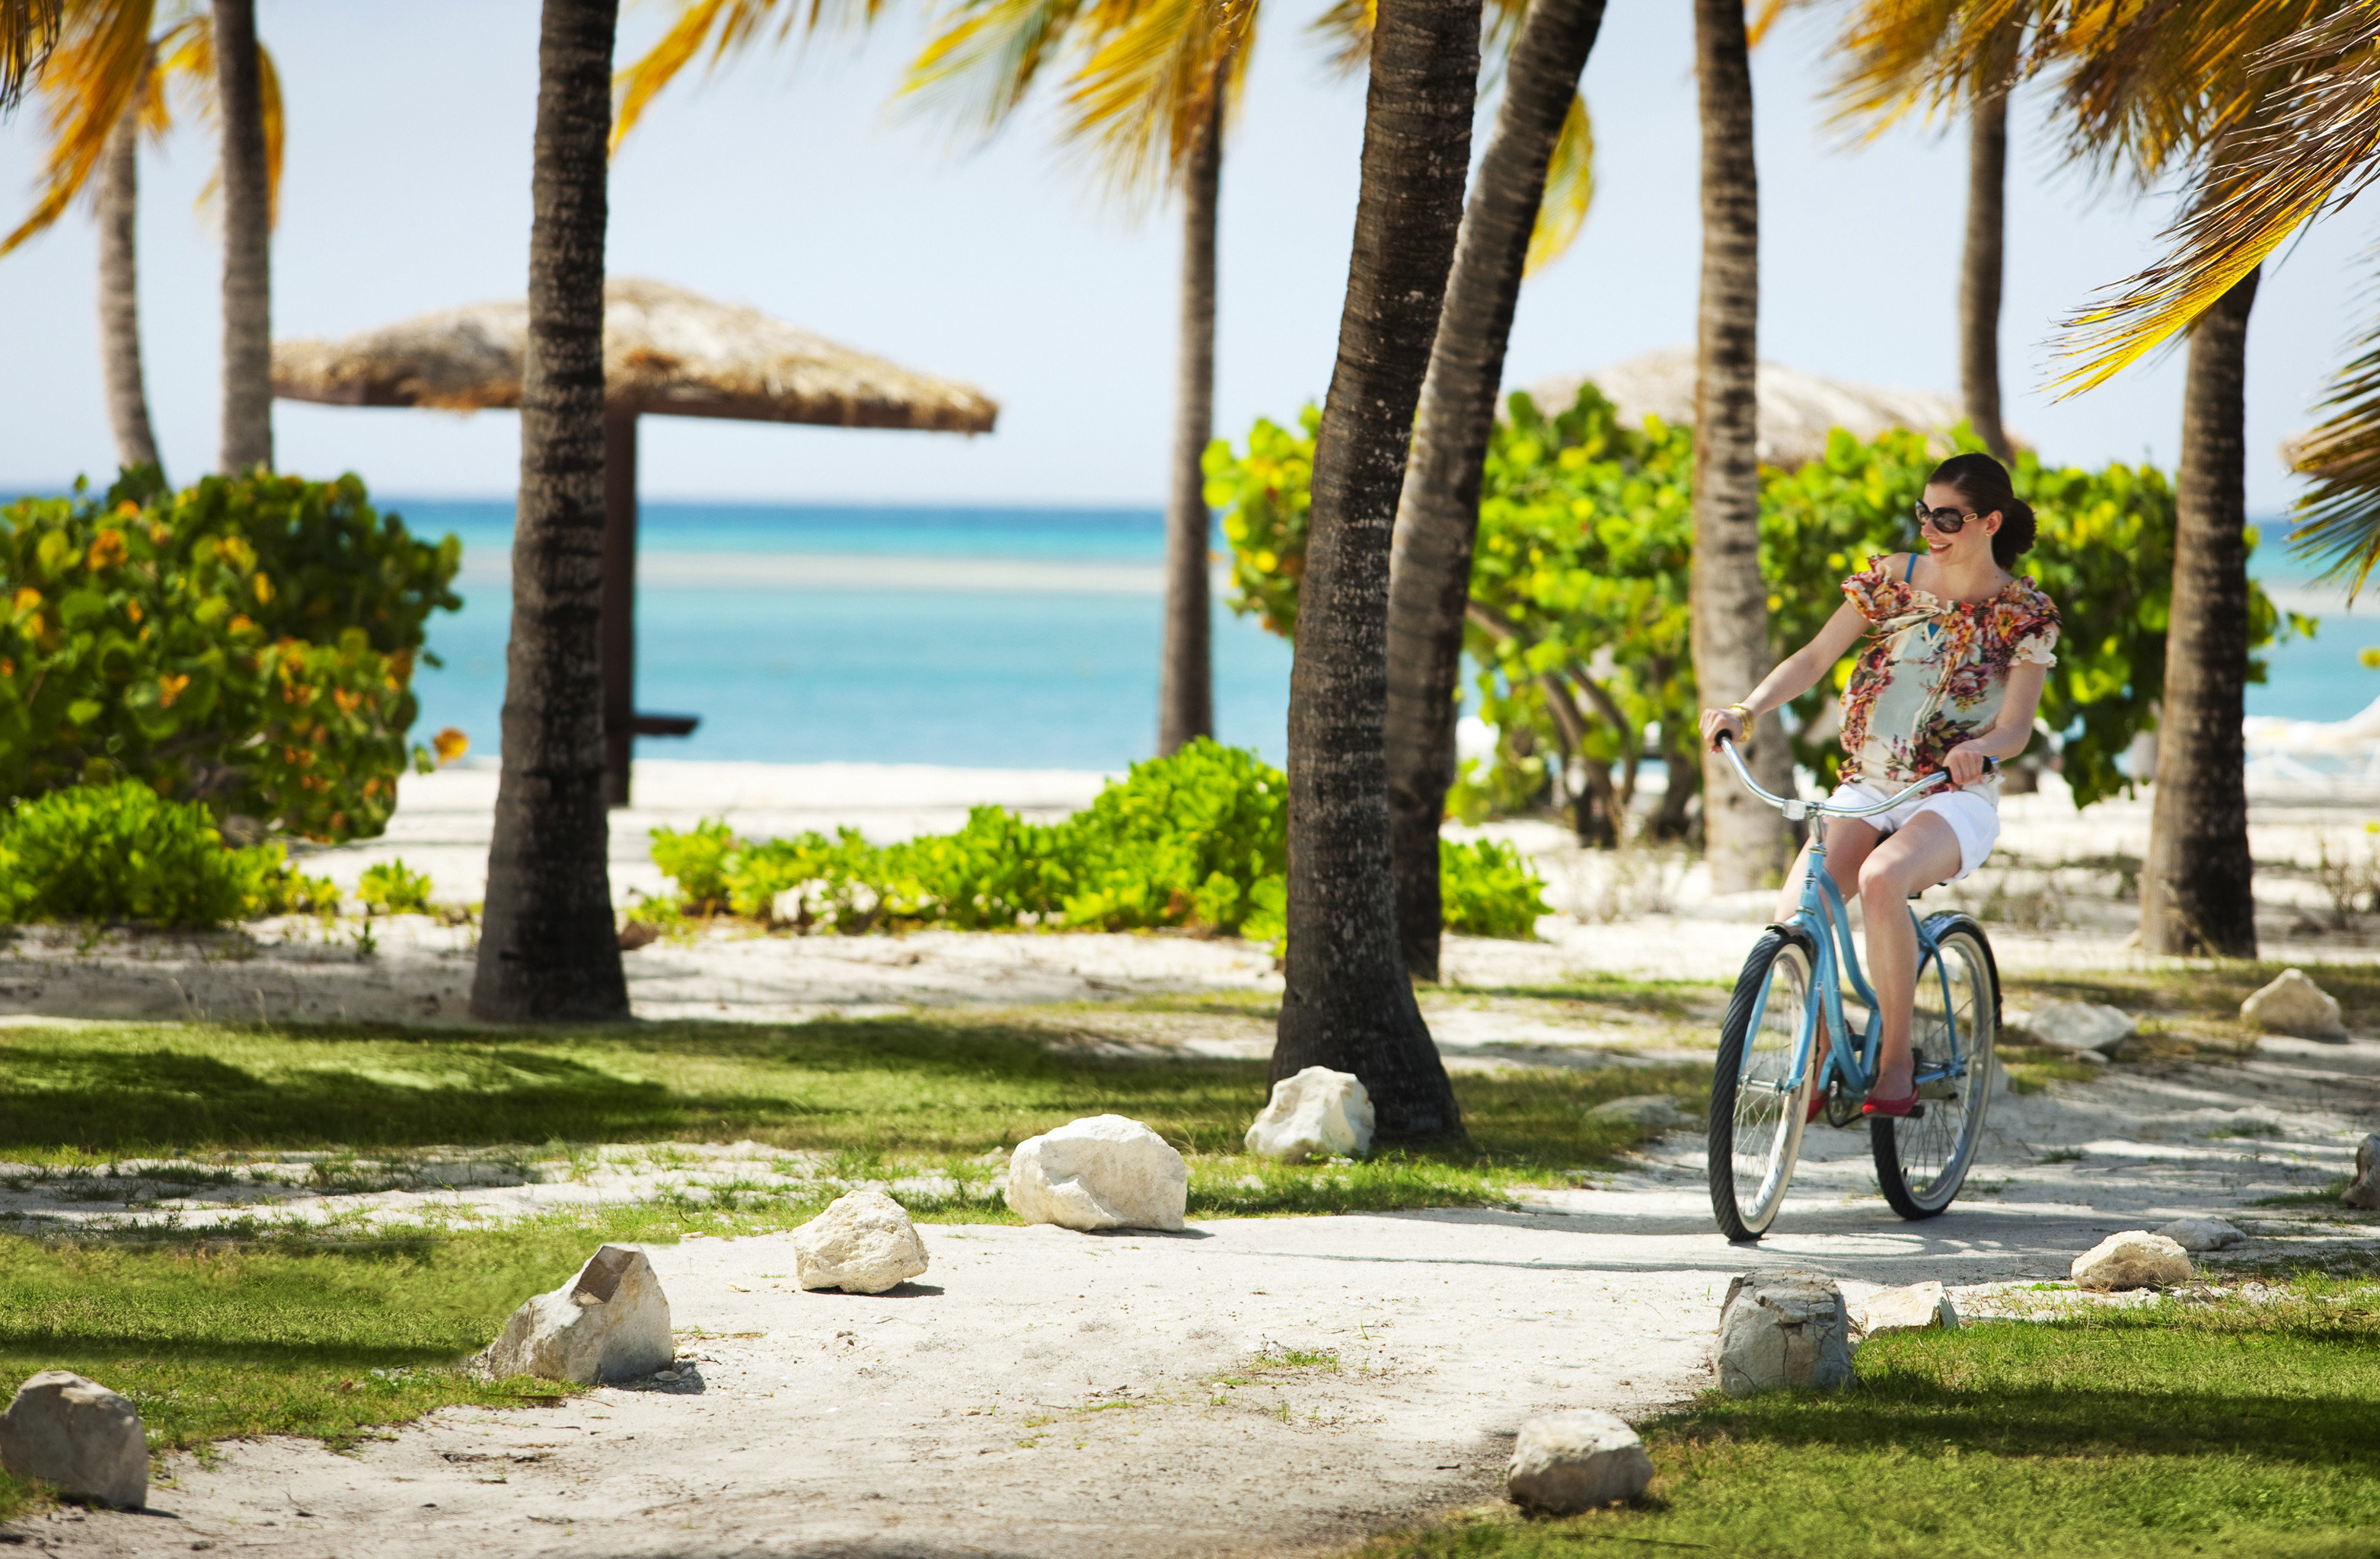 All-inclusive Beach Beachfront Hotels Island Luxury Outdoor Activities Outdoors Trip Ideas Waterfront Wellness grass outdoor tree bicycle vacation estate Resort plant